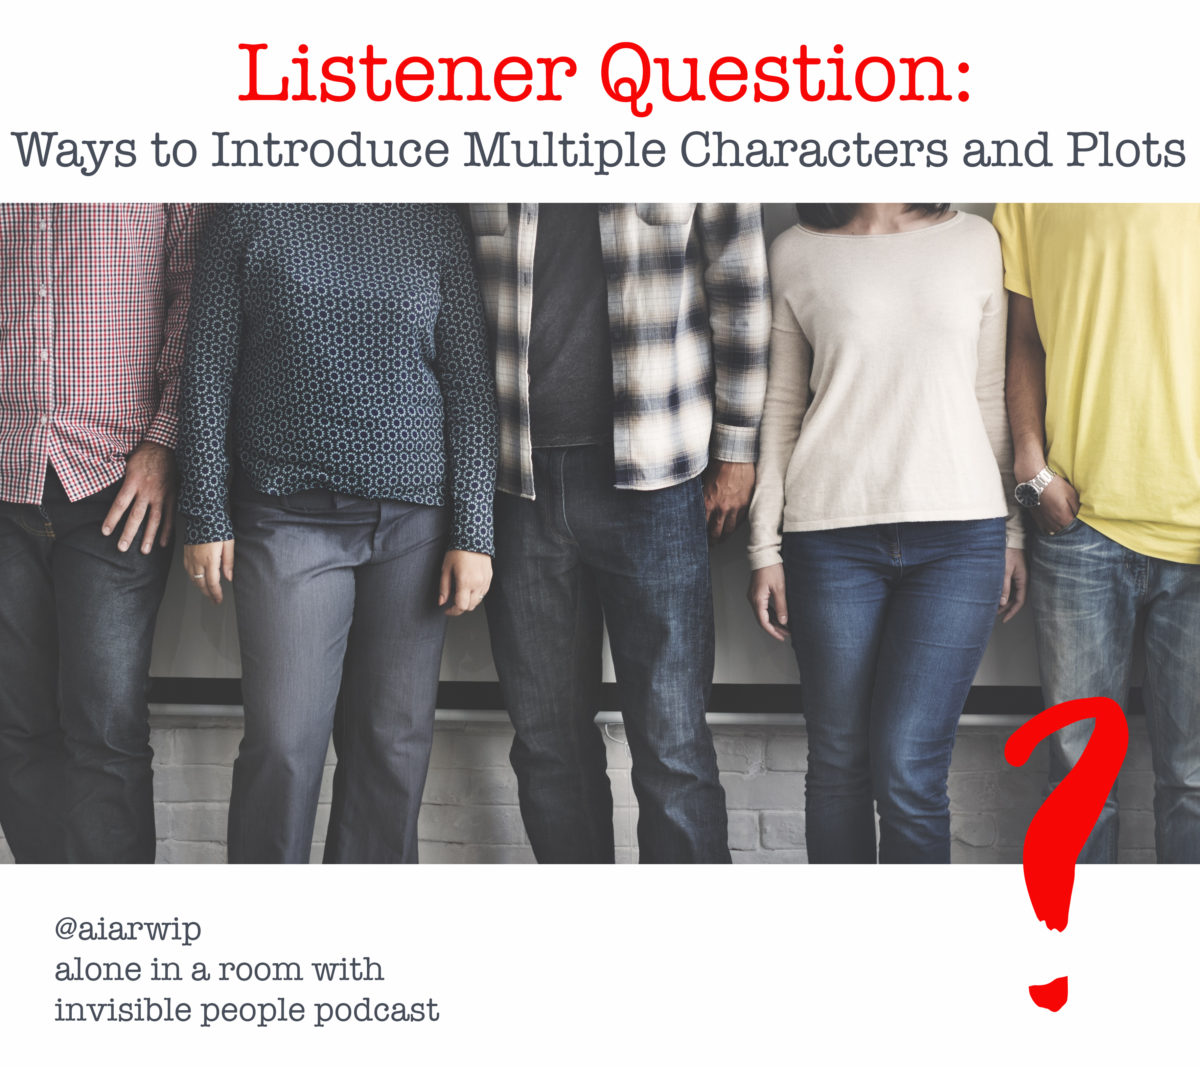 Episode 9: Listener Question: Ways to Introduce Multiple Characters and Plots